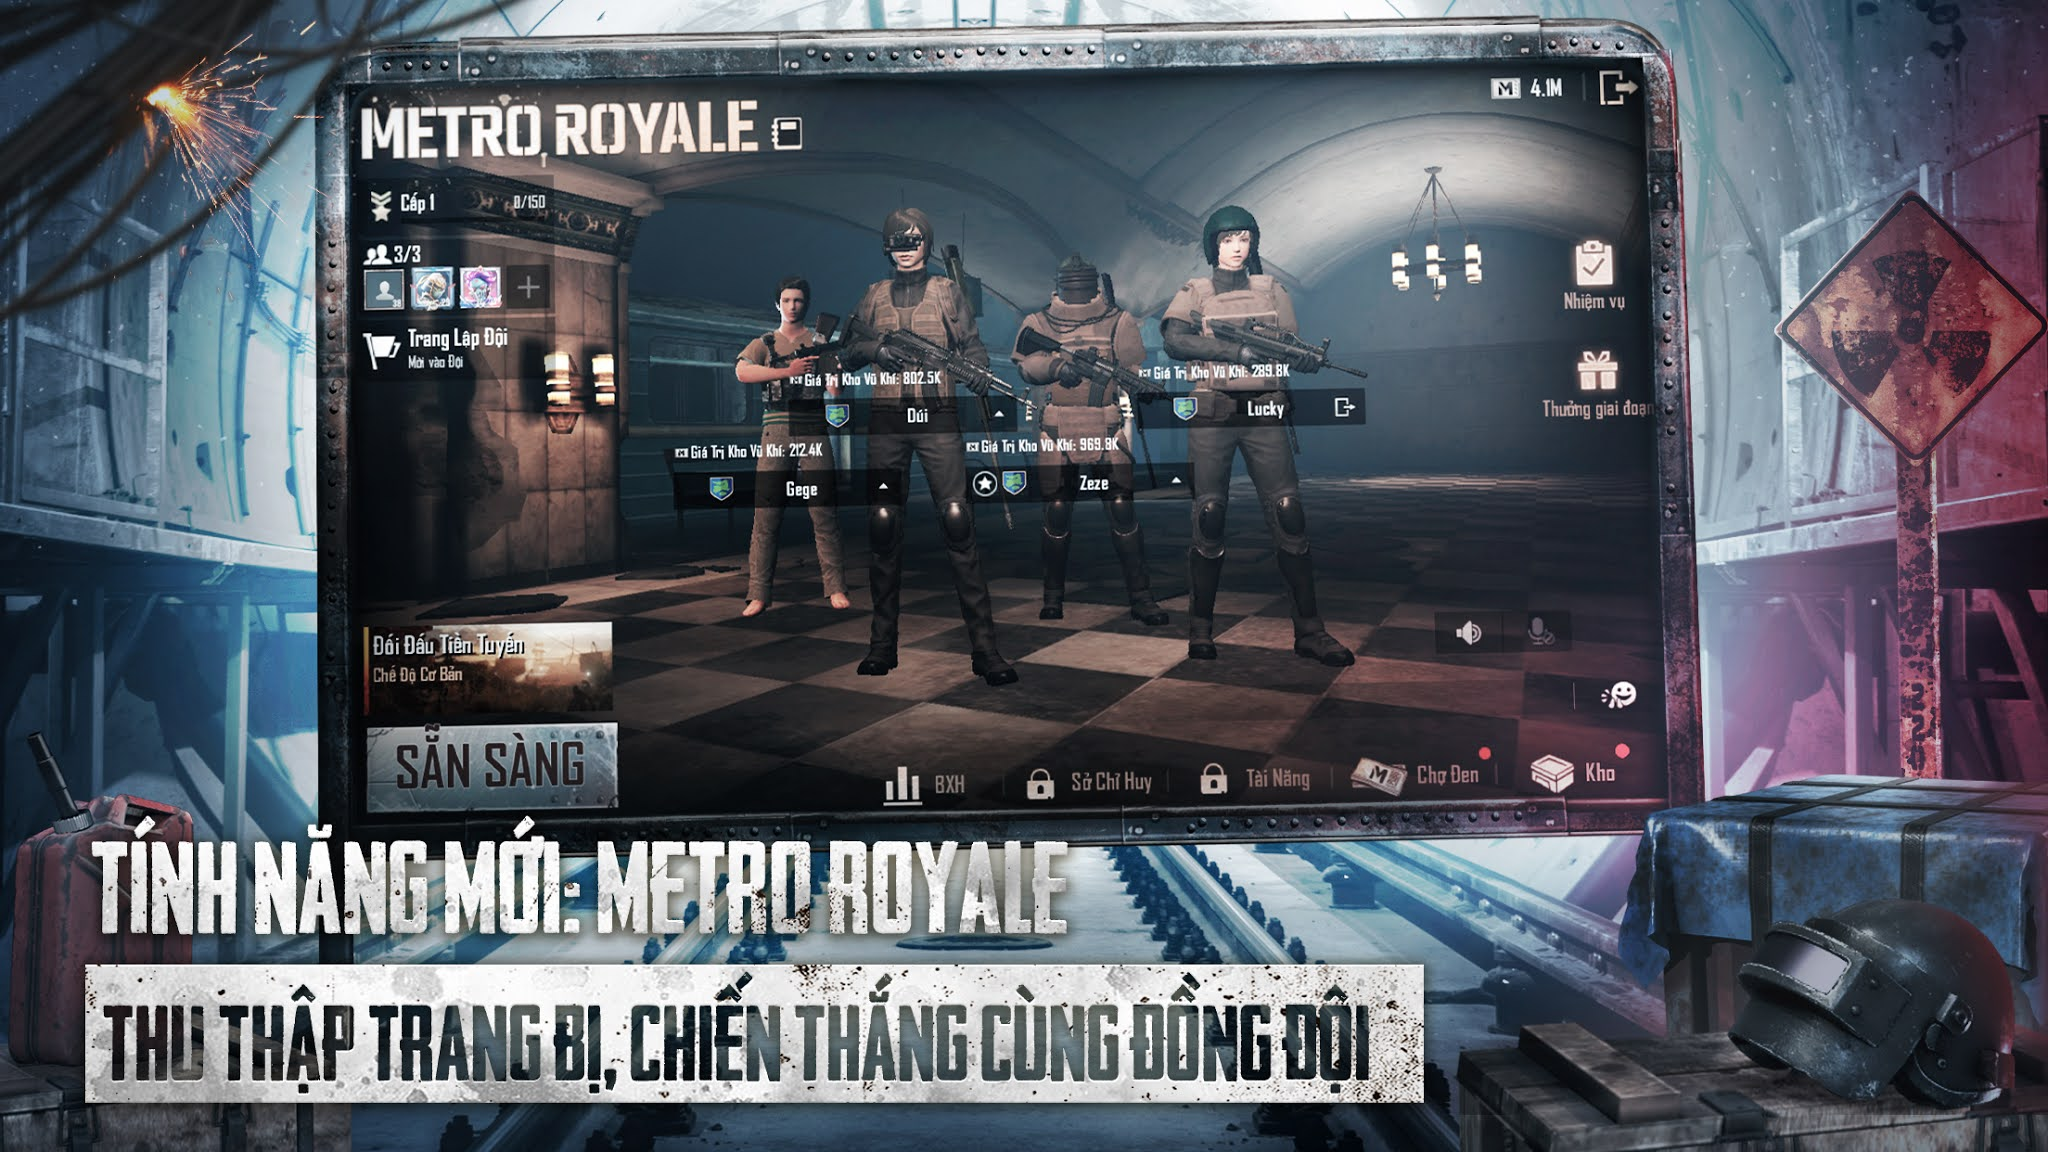 Different versions of PUBG Mobile